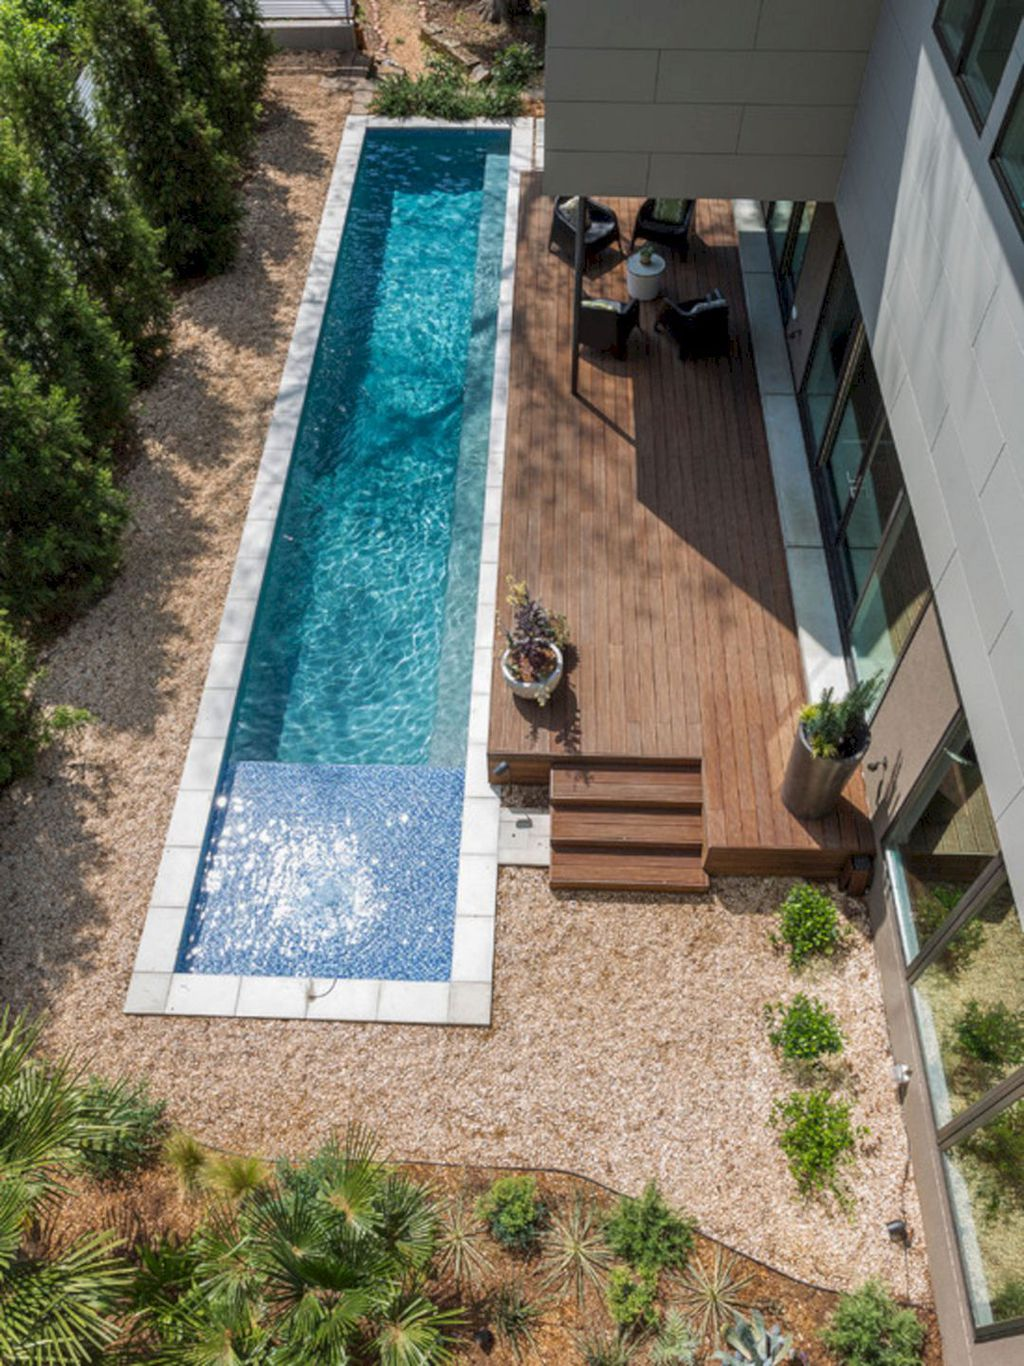 Best Kitchen Gallery: Creative Ways To Use Shipping Containers As Pools 9homes of Shipping Container Pool on rachelxblog.com